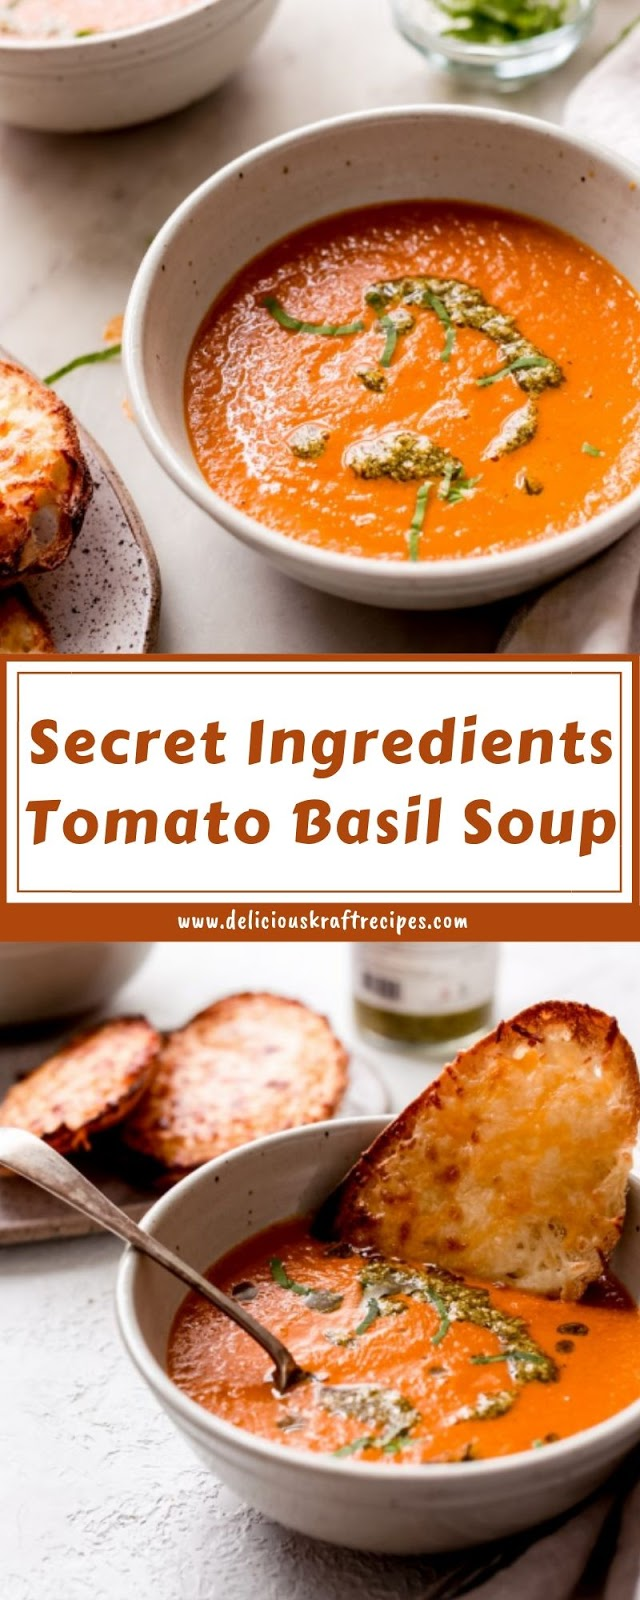 Secret Ingredients Tomato Basil Soup